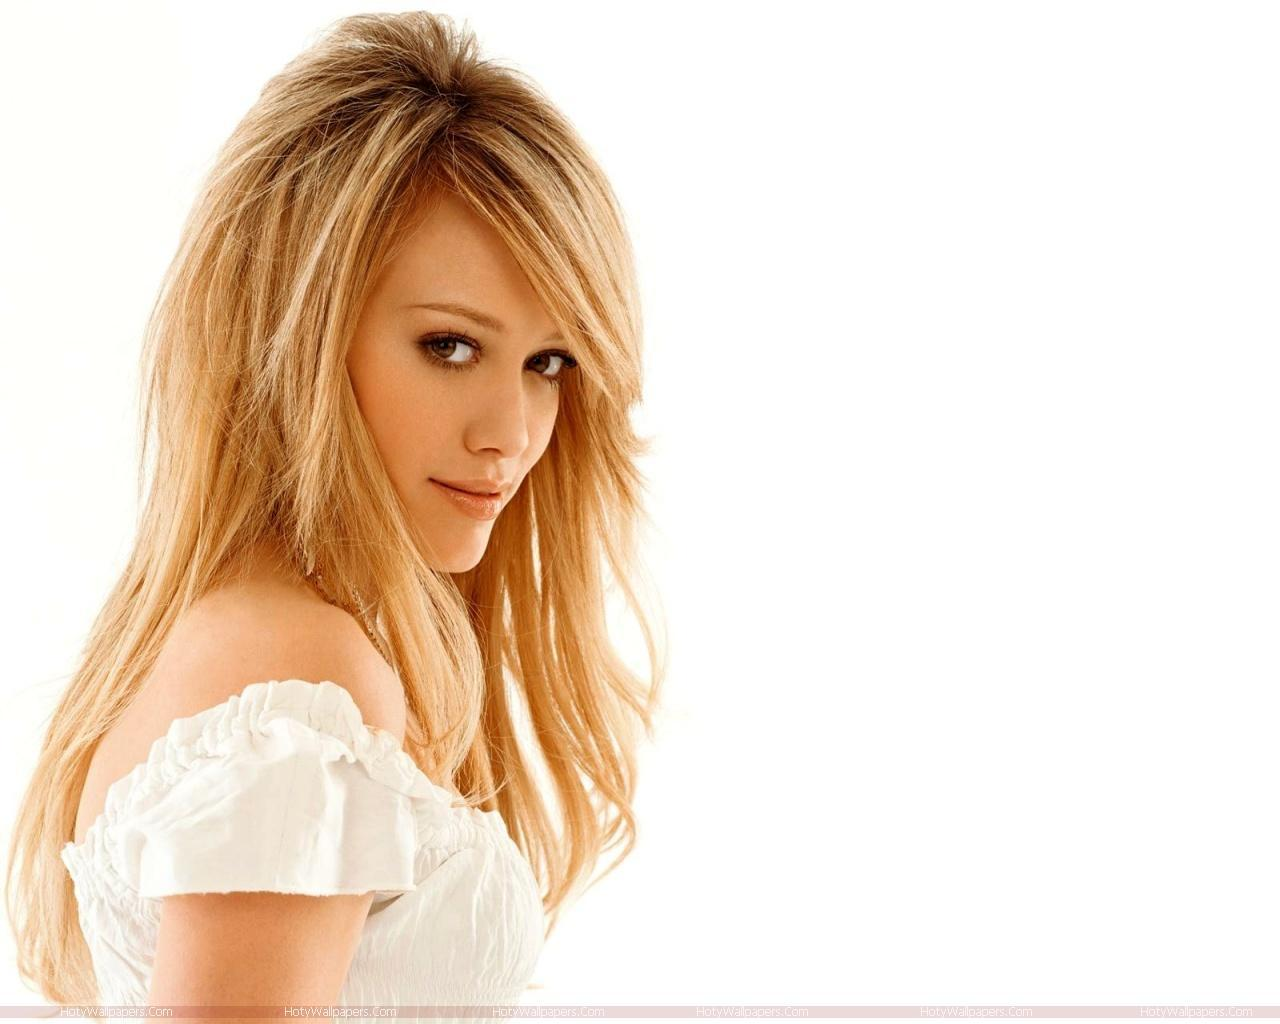 hilary duff tour 2007: